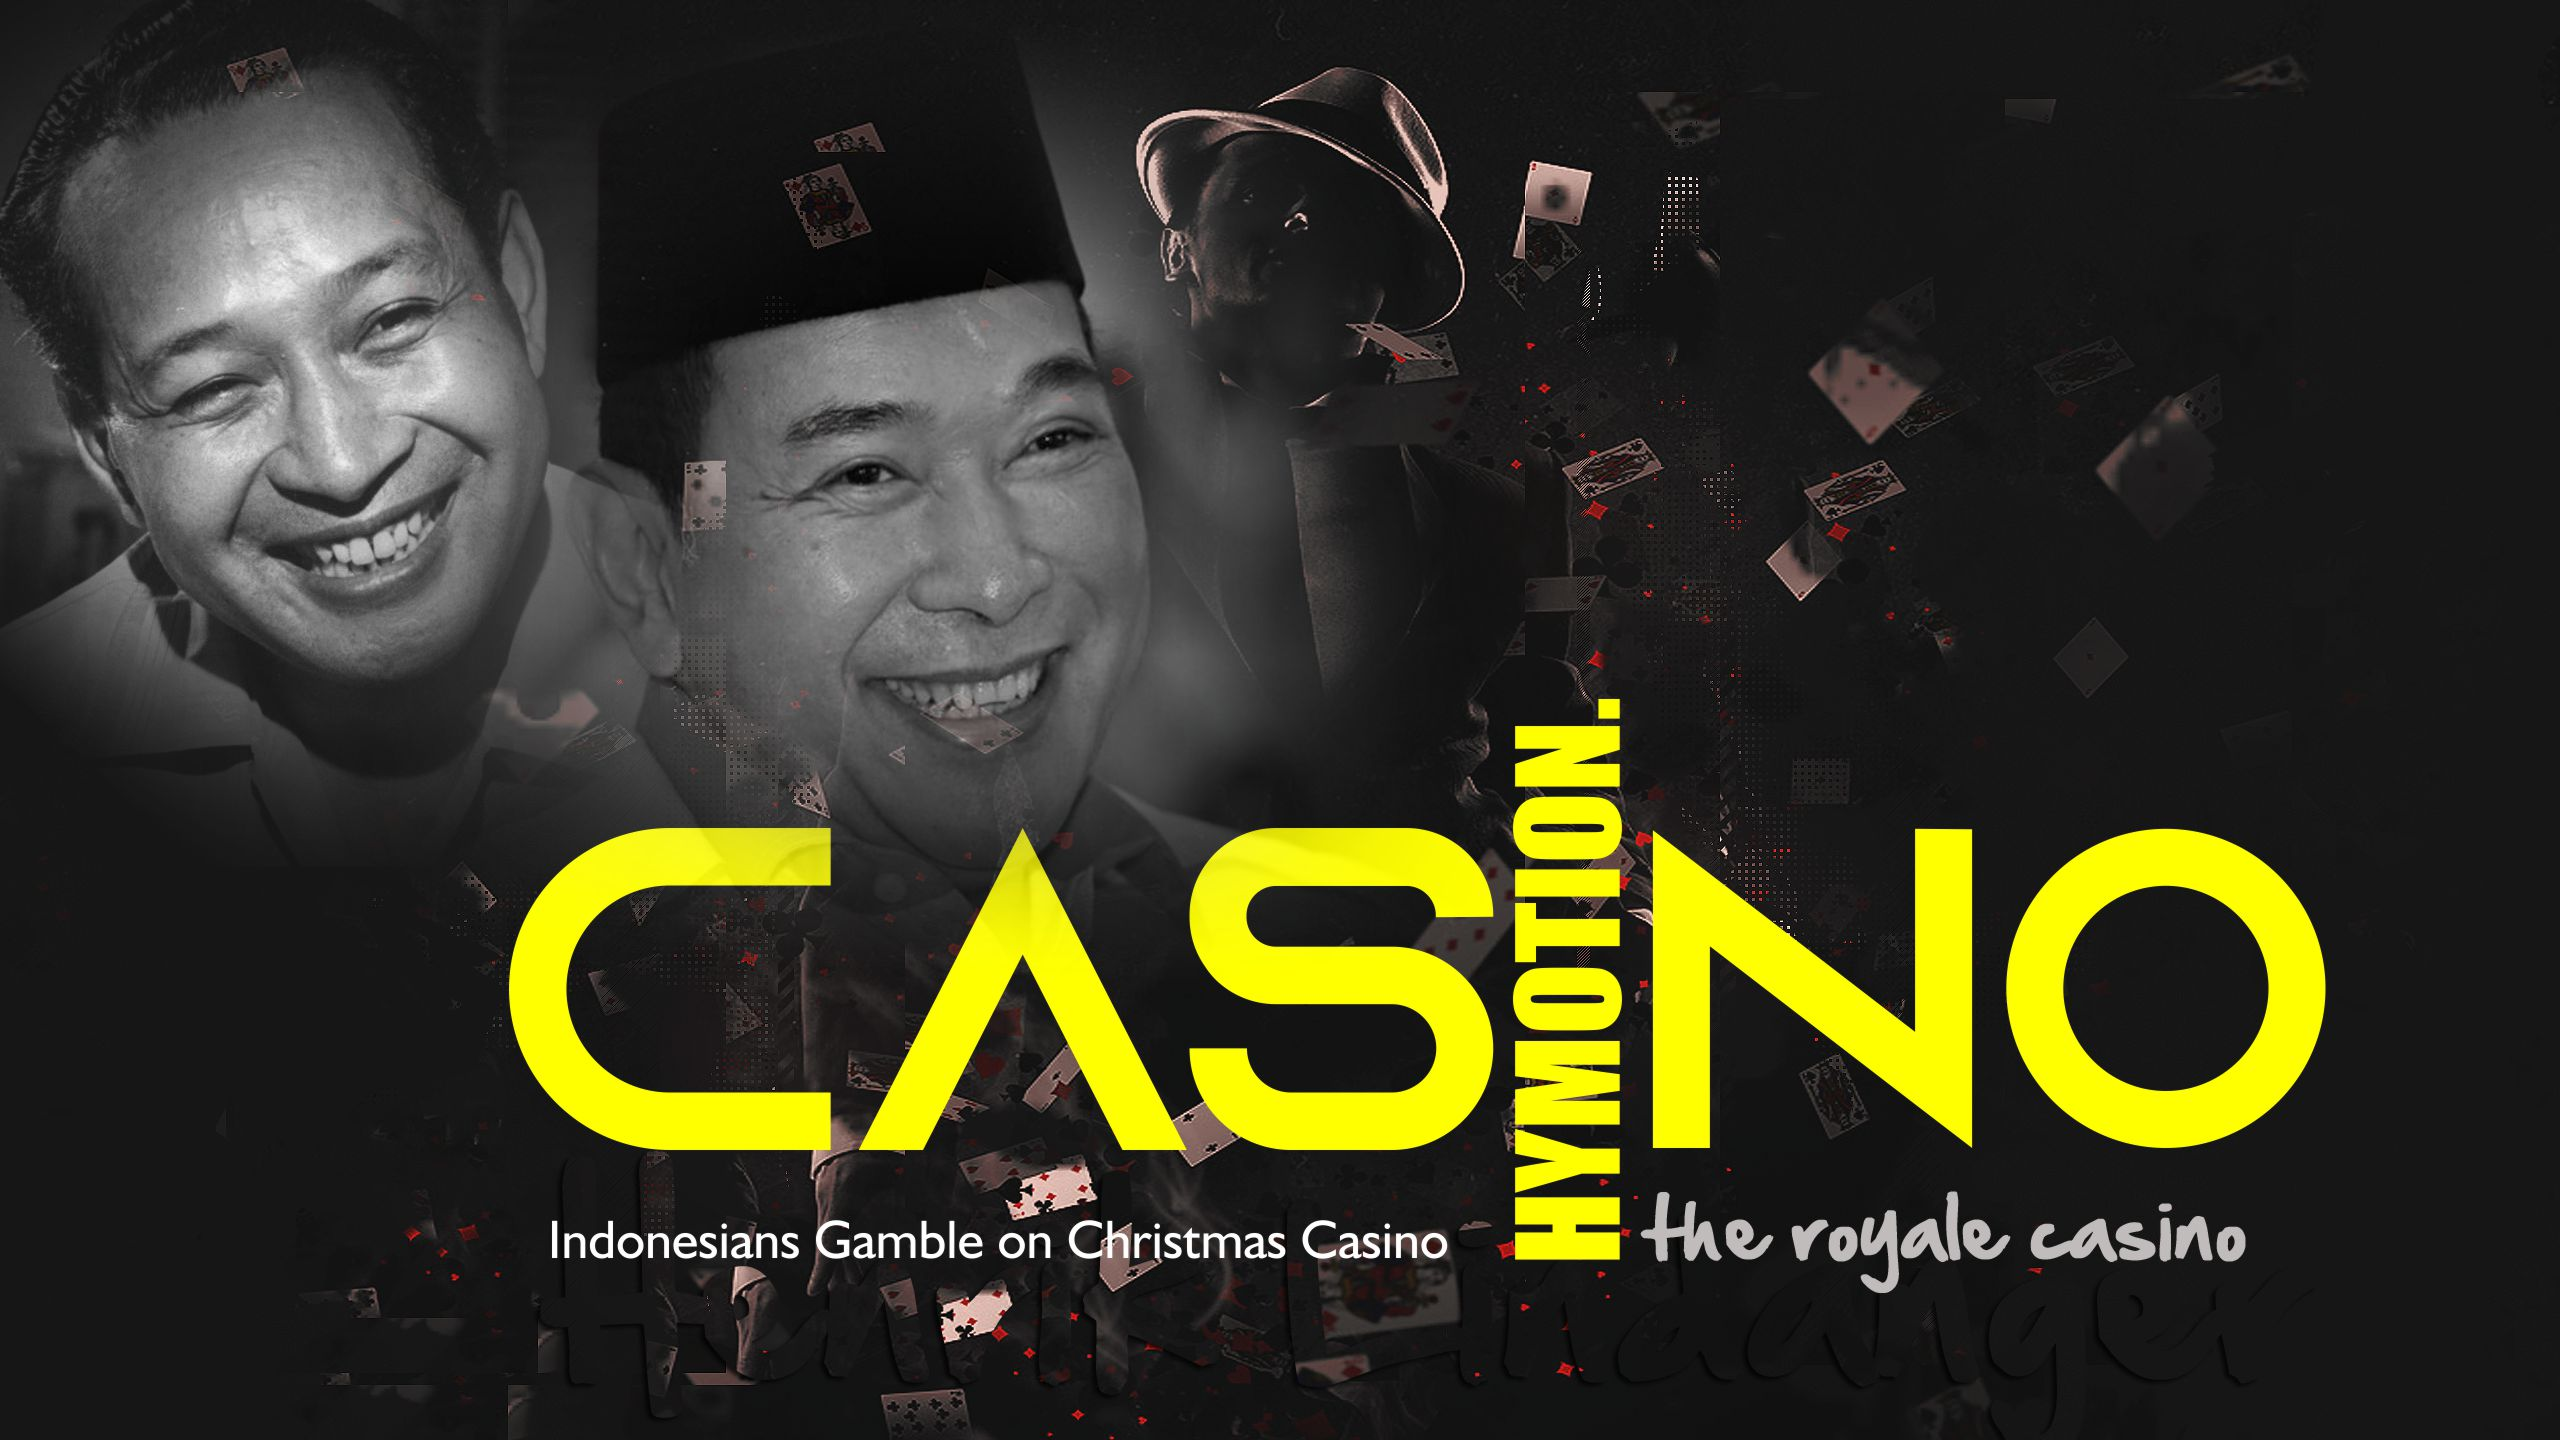 Indonesians Gamble on Christmas Casino